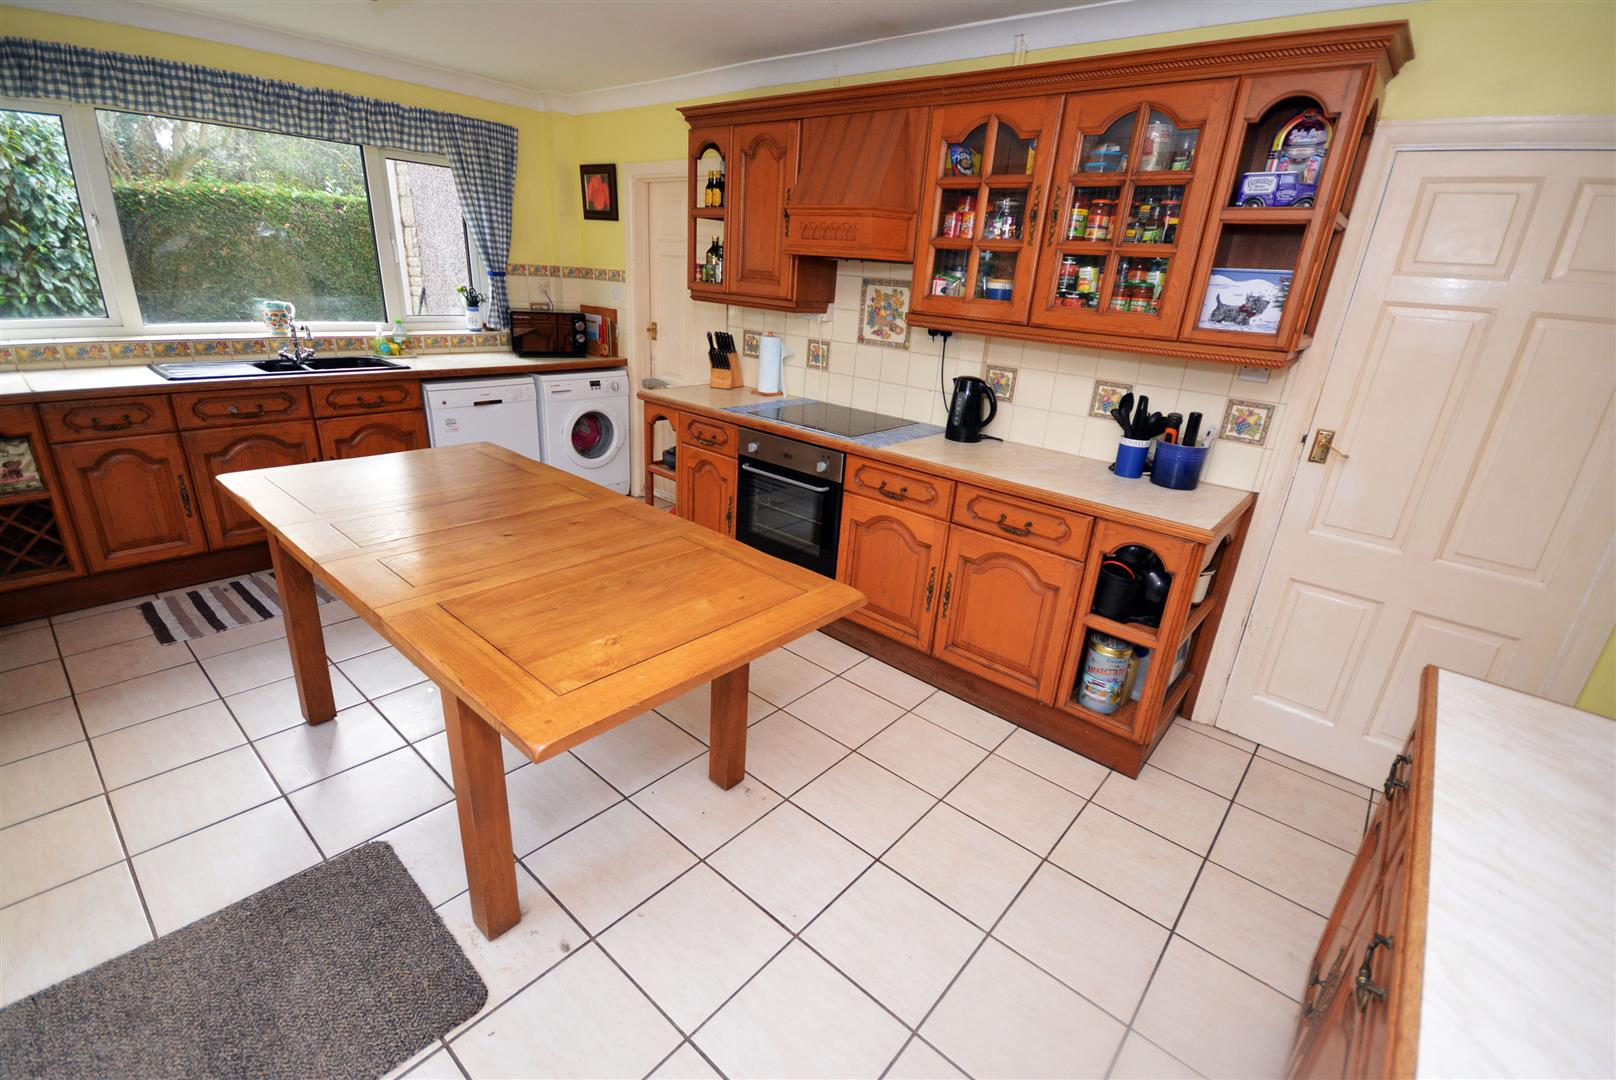 3 bed detached house for sale in Wellfield Road, Cardiff - Property Image 1